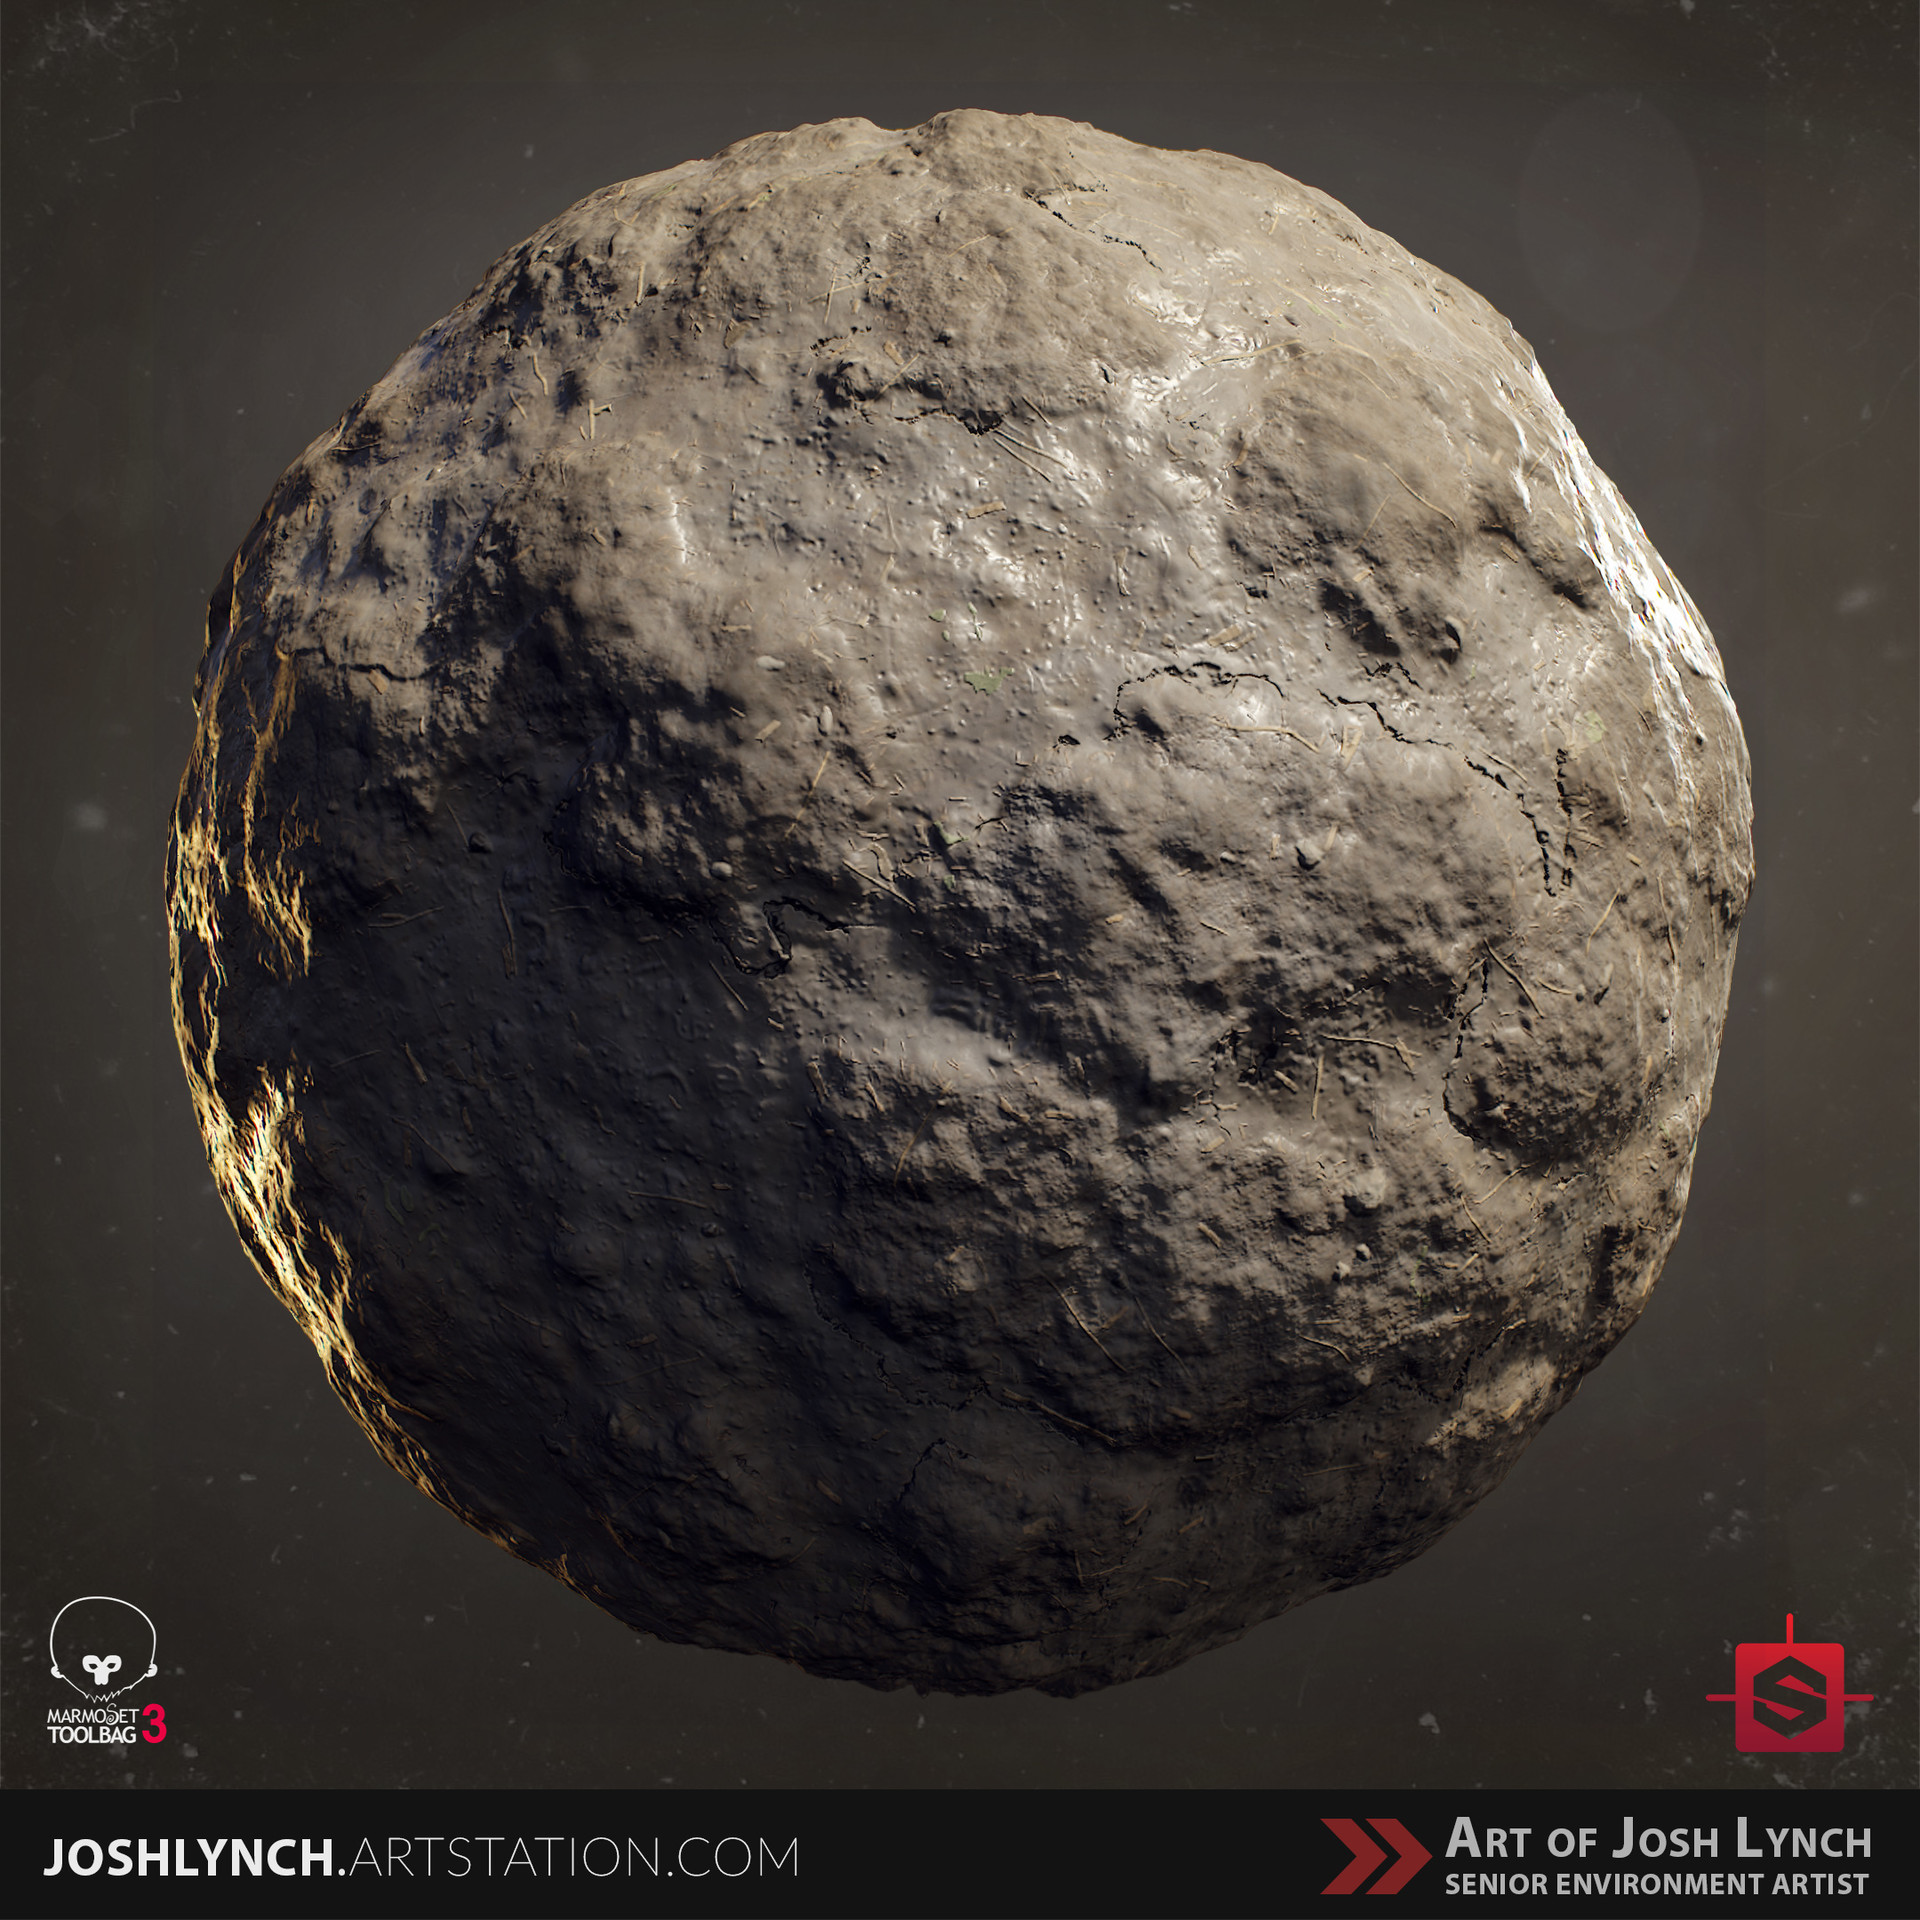 Joshua lynch ground mud 01 layout square sphere 01